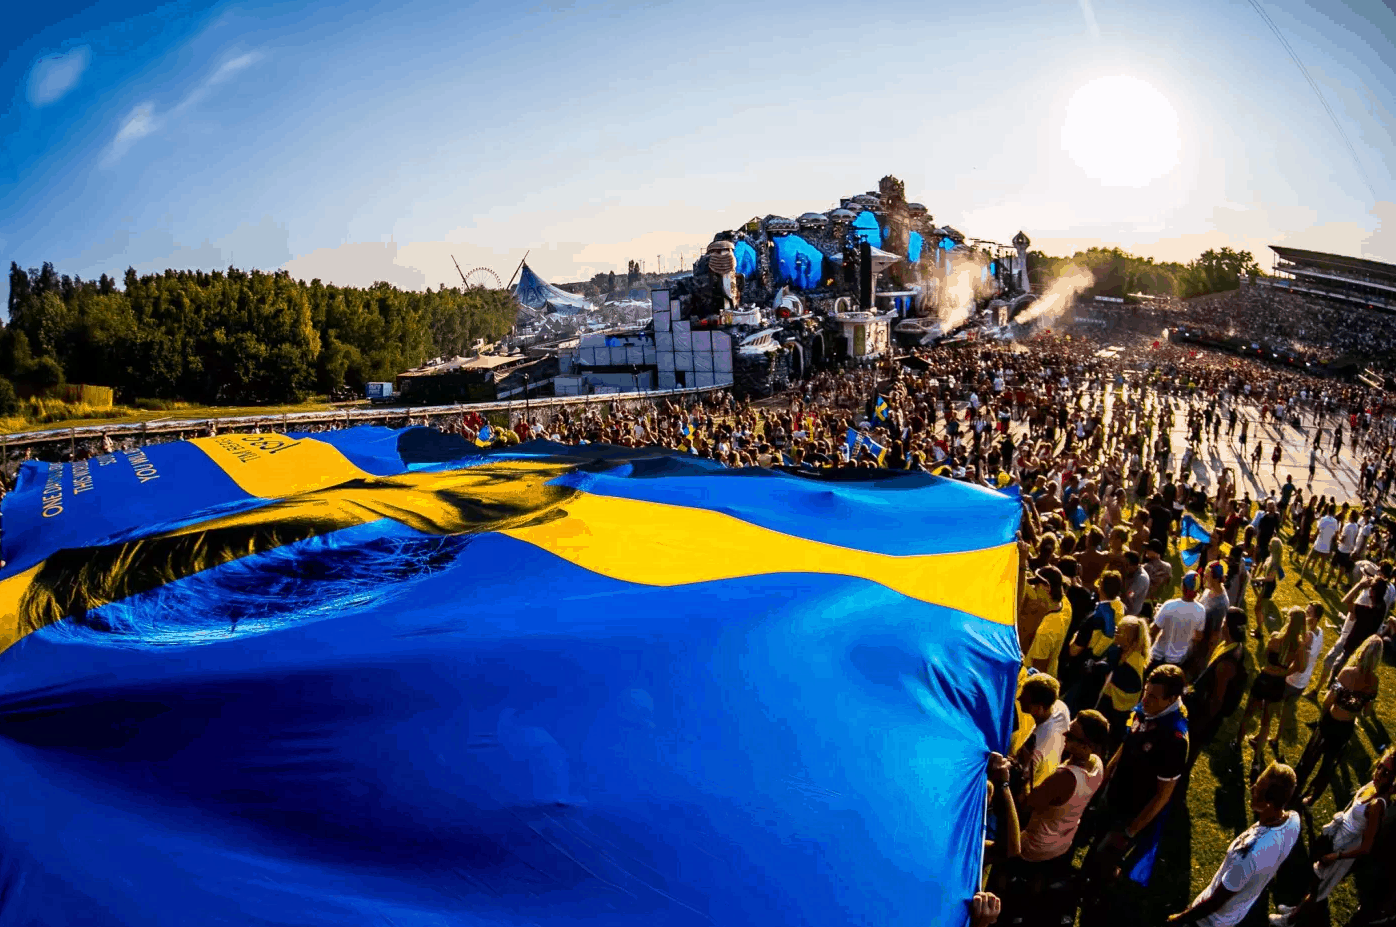 Szwedzka flaga Avicii na Tomorrowland 2018